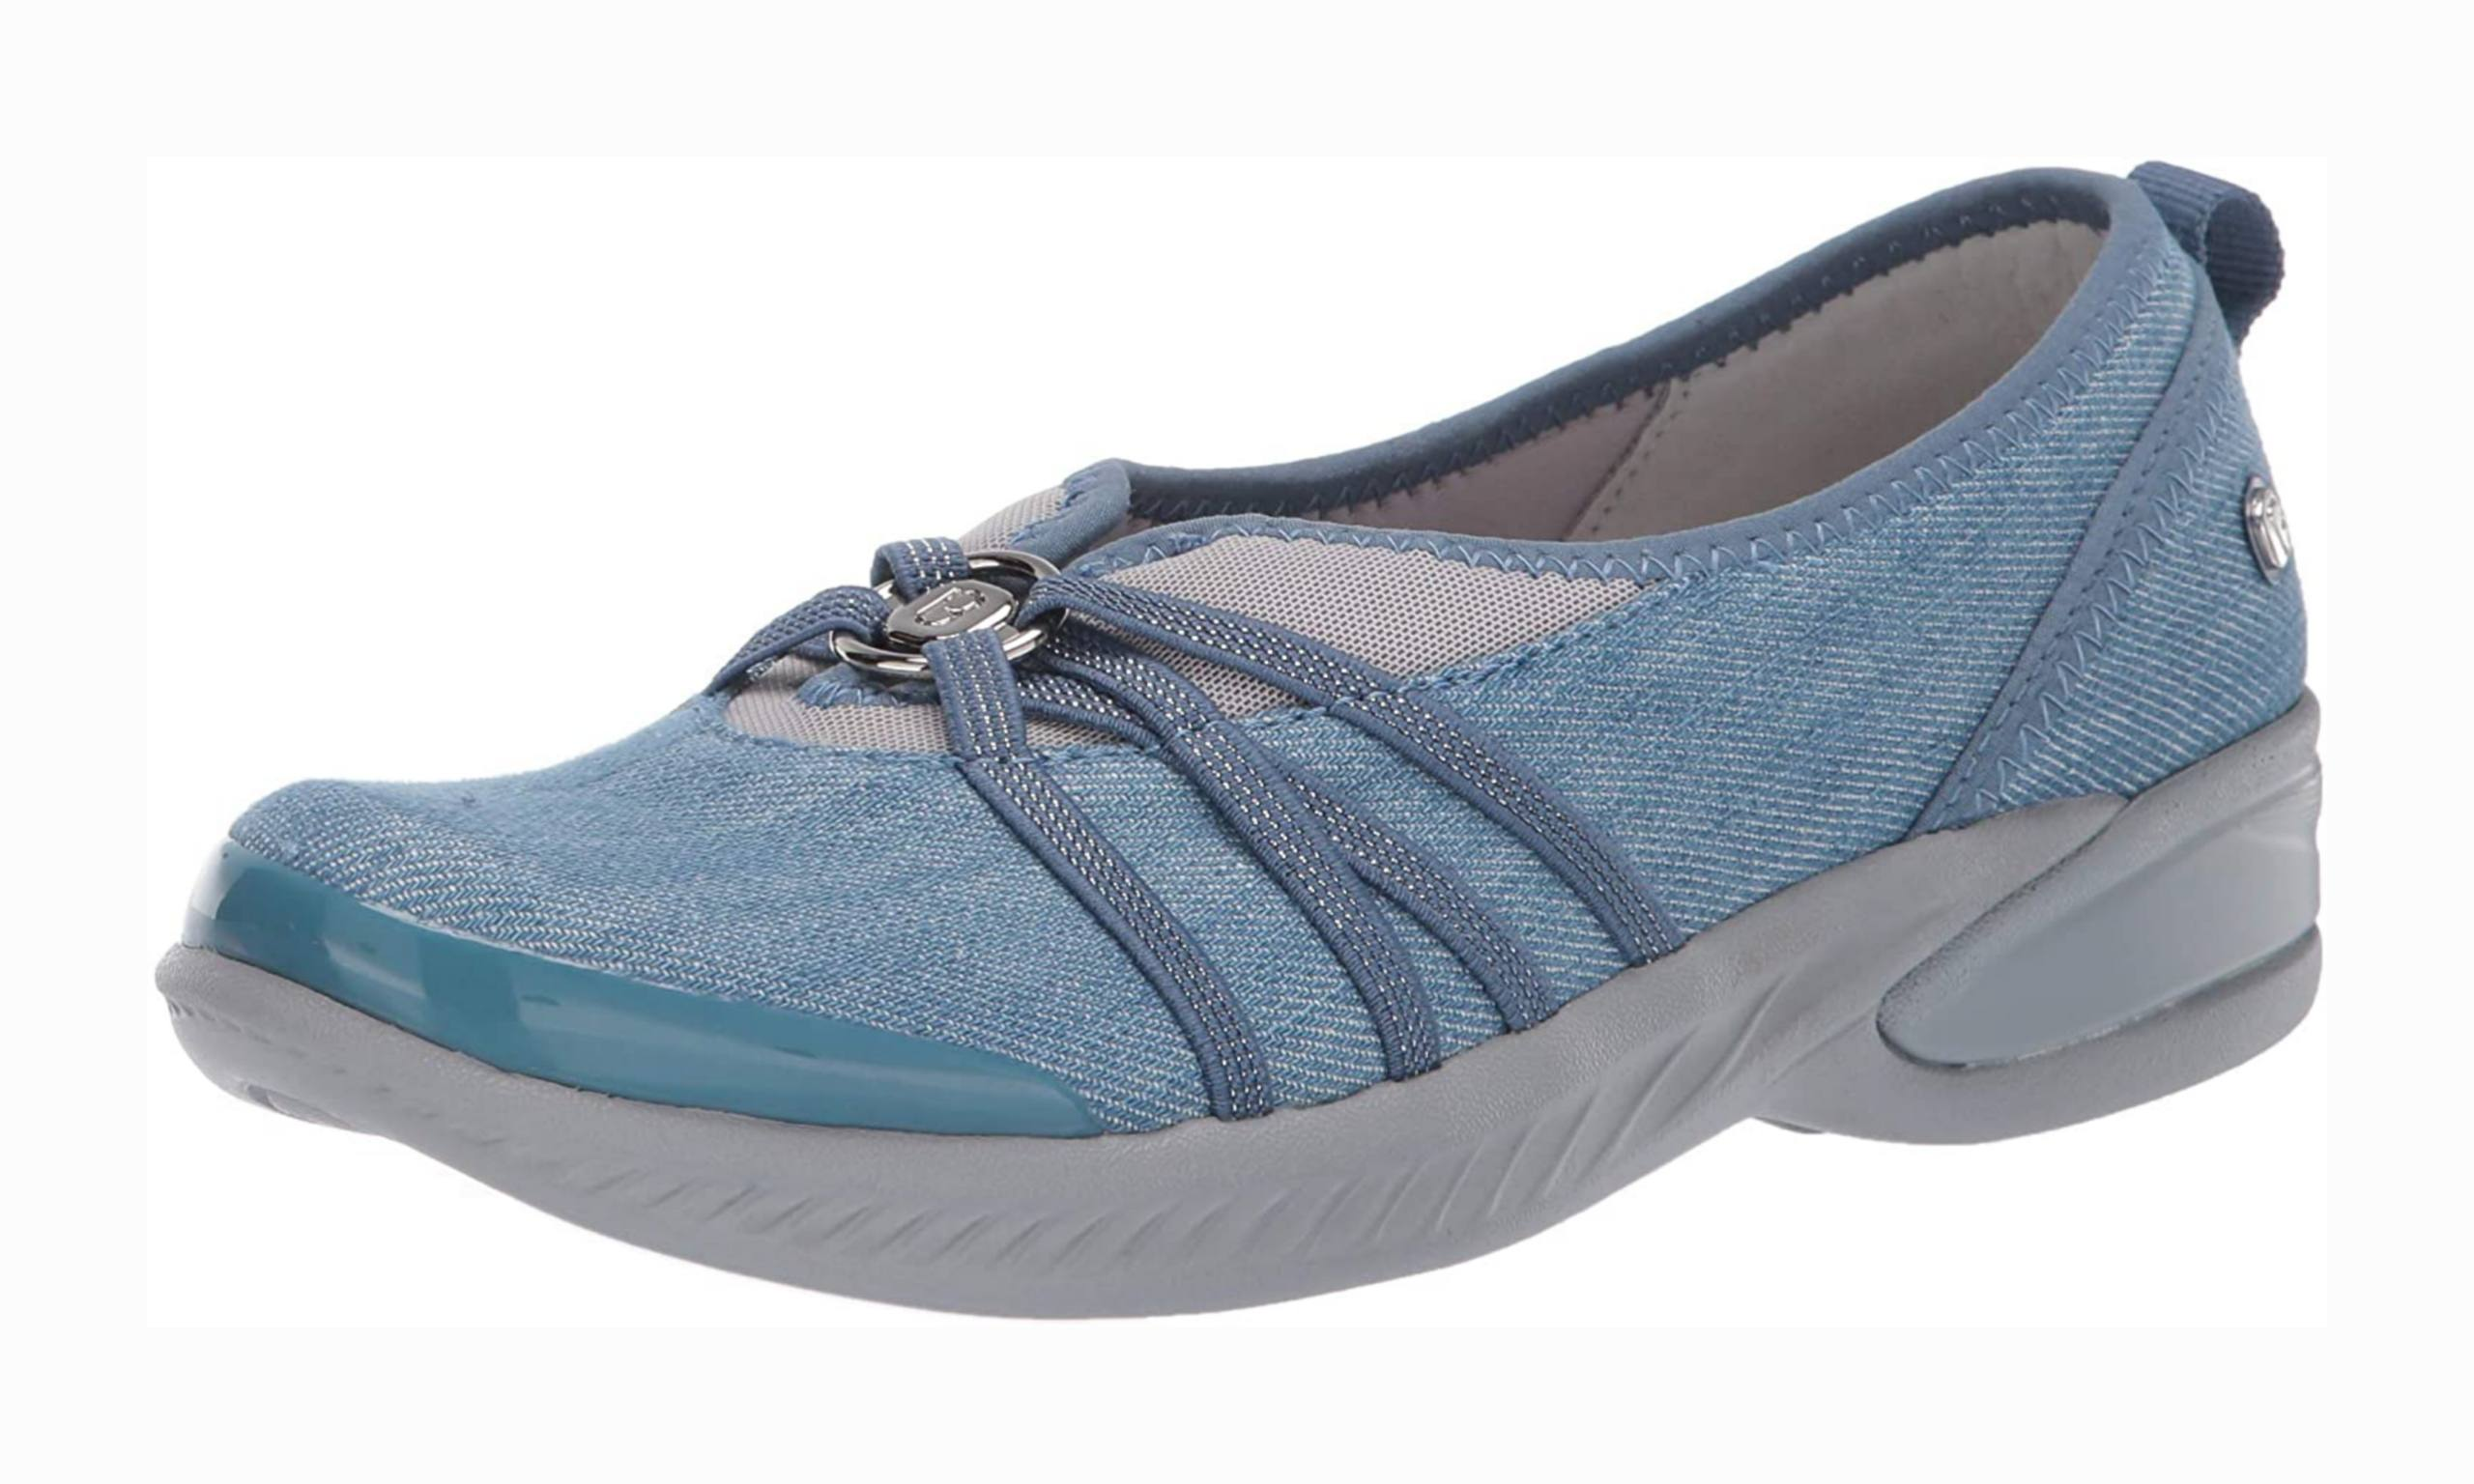 Women's shoe with arch support